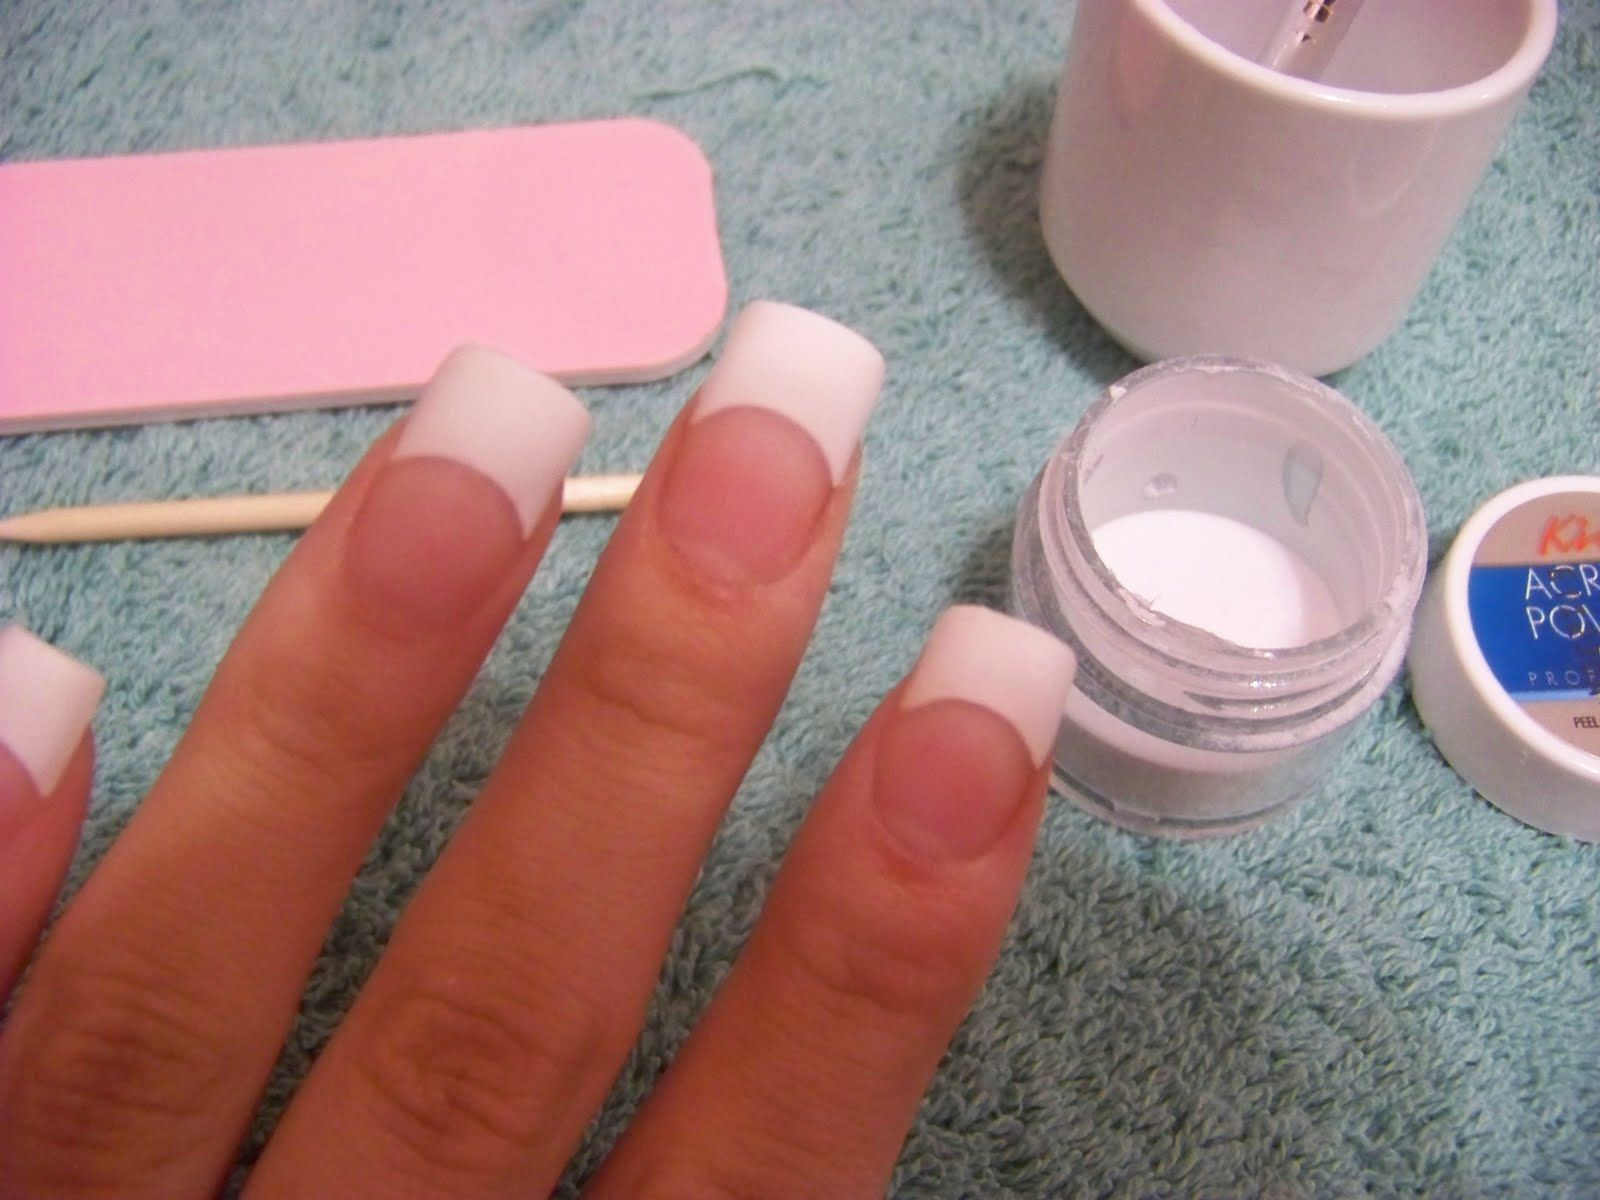 How to apply acrylic nails the nails of course you have how to apply acrylic nails set can be found in drugstore solutioingenieria Images